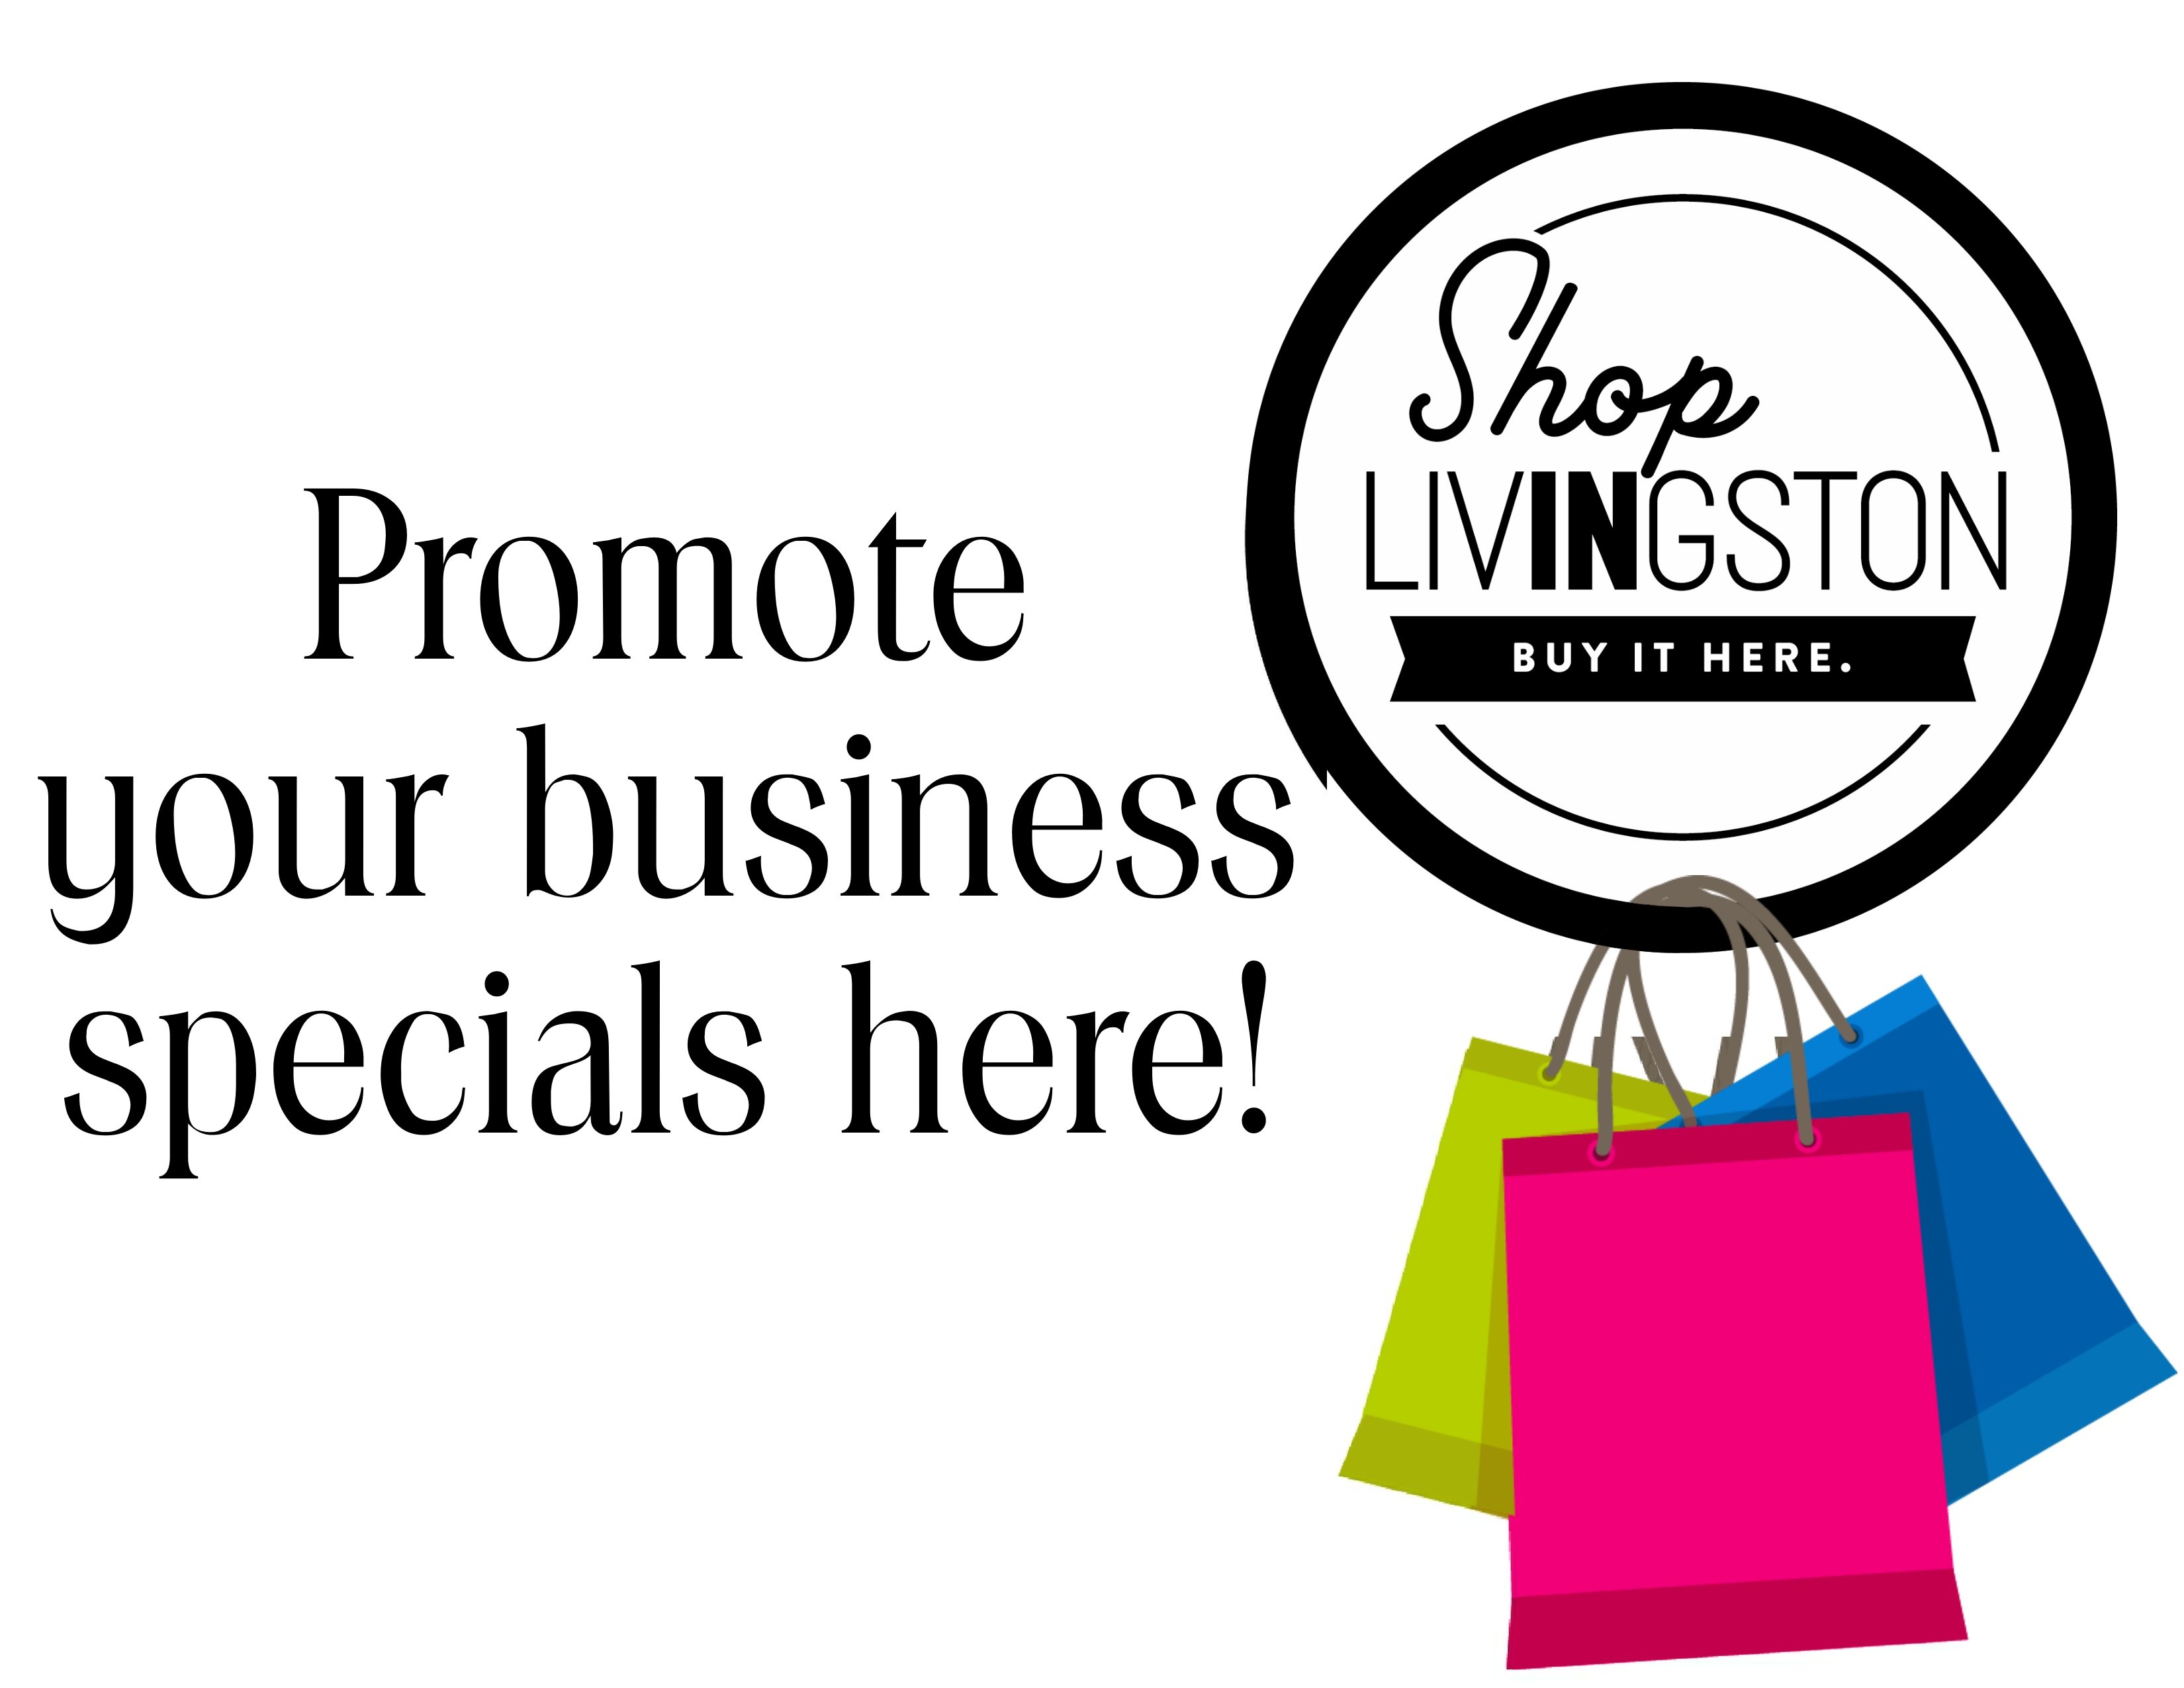 Shop IN Livingston, Trip Planner, Shop Local, Find It IN Livingston, Livingston County Chamber, Holiday, Sales, Specials